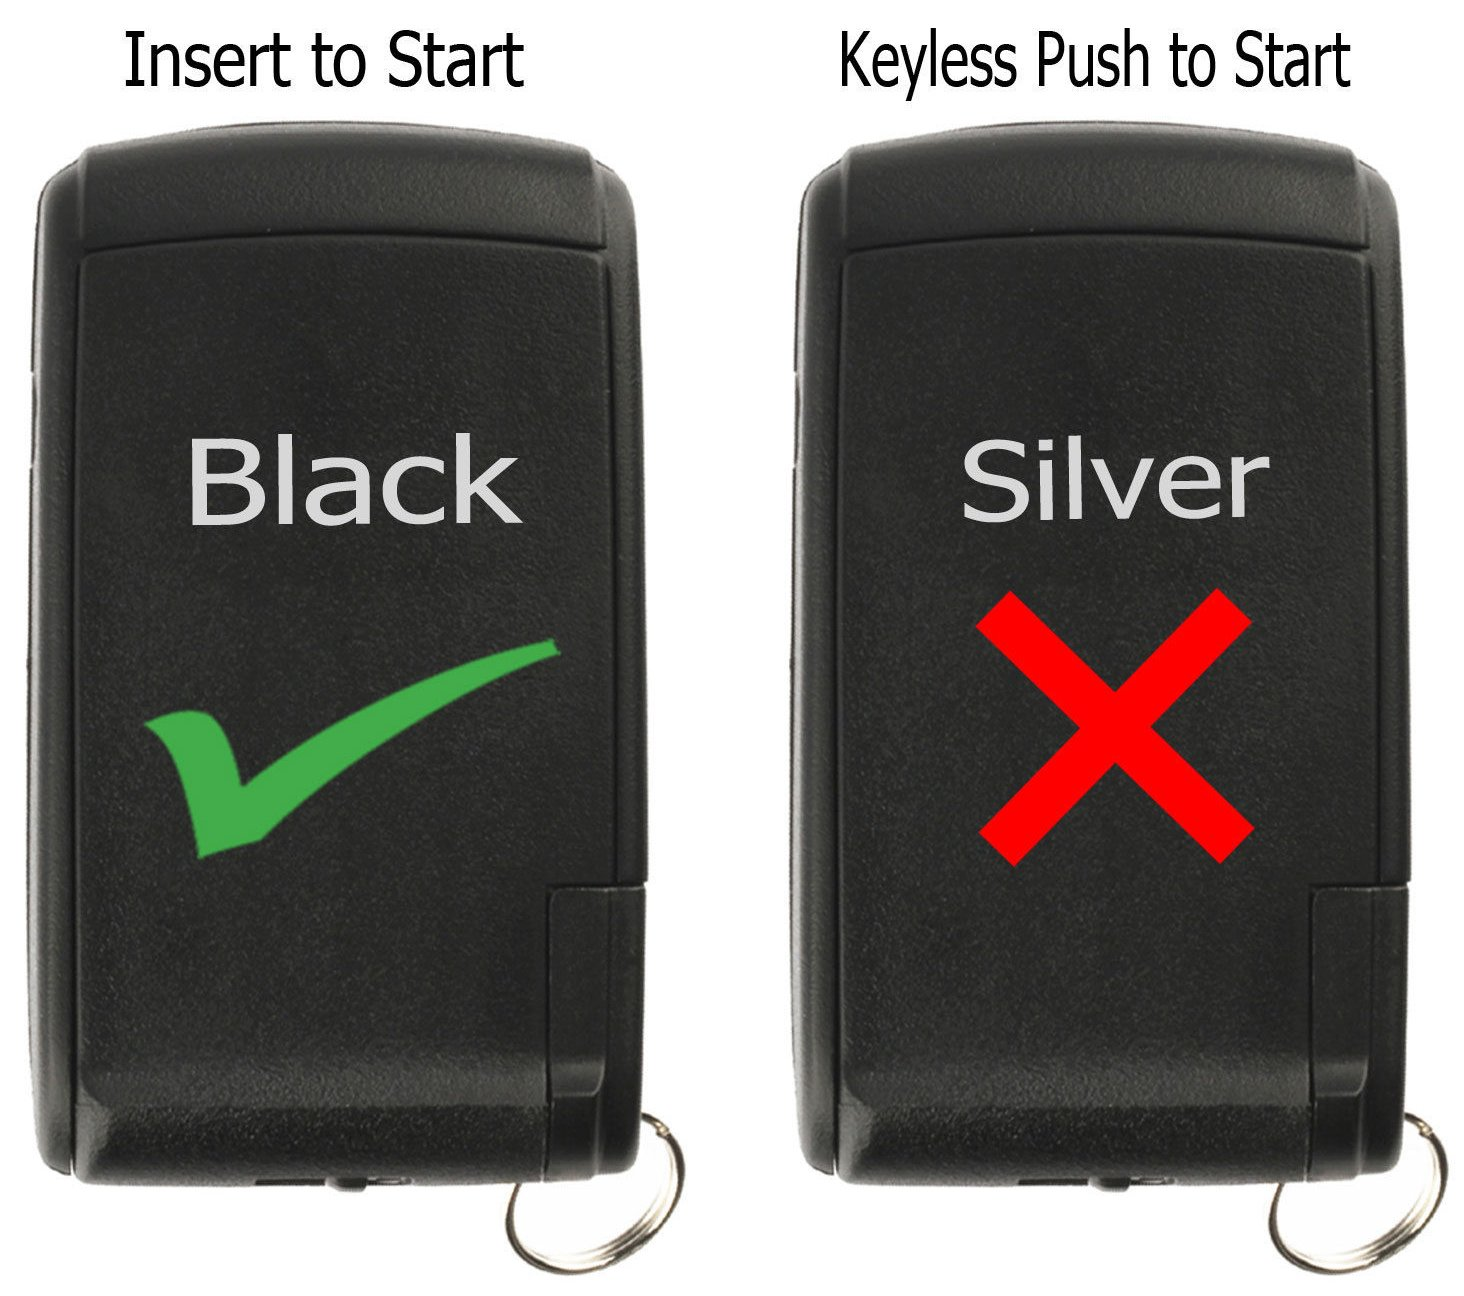 KeylessOption Keyless Entry Remote Control Car Key Fob Replacement for Prius MOZB21TG Pack of 2